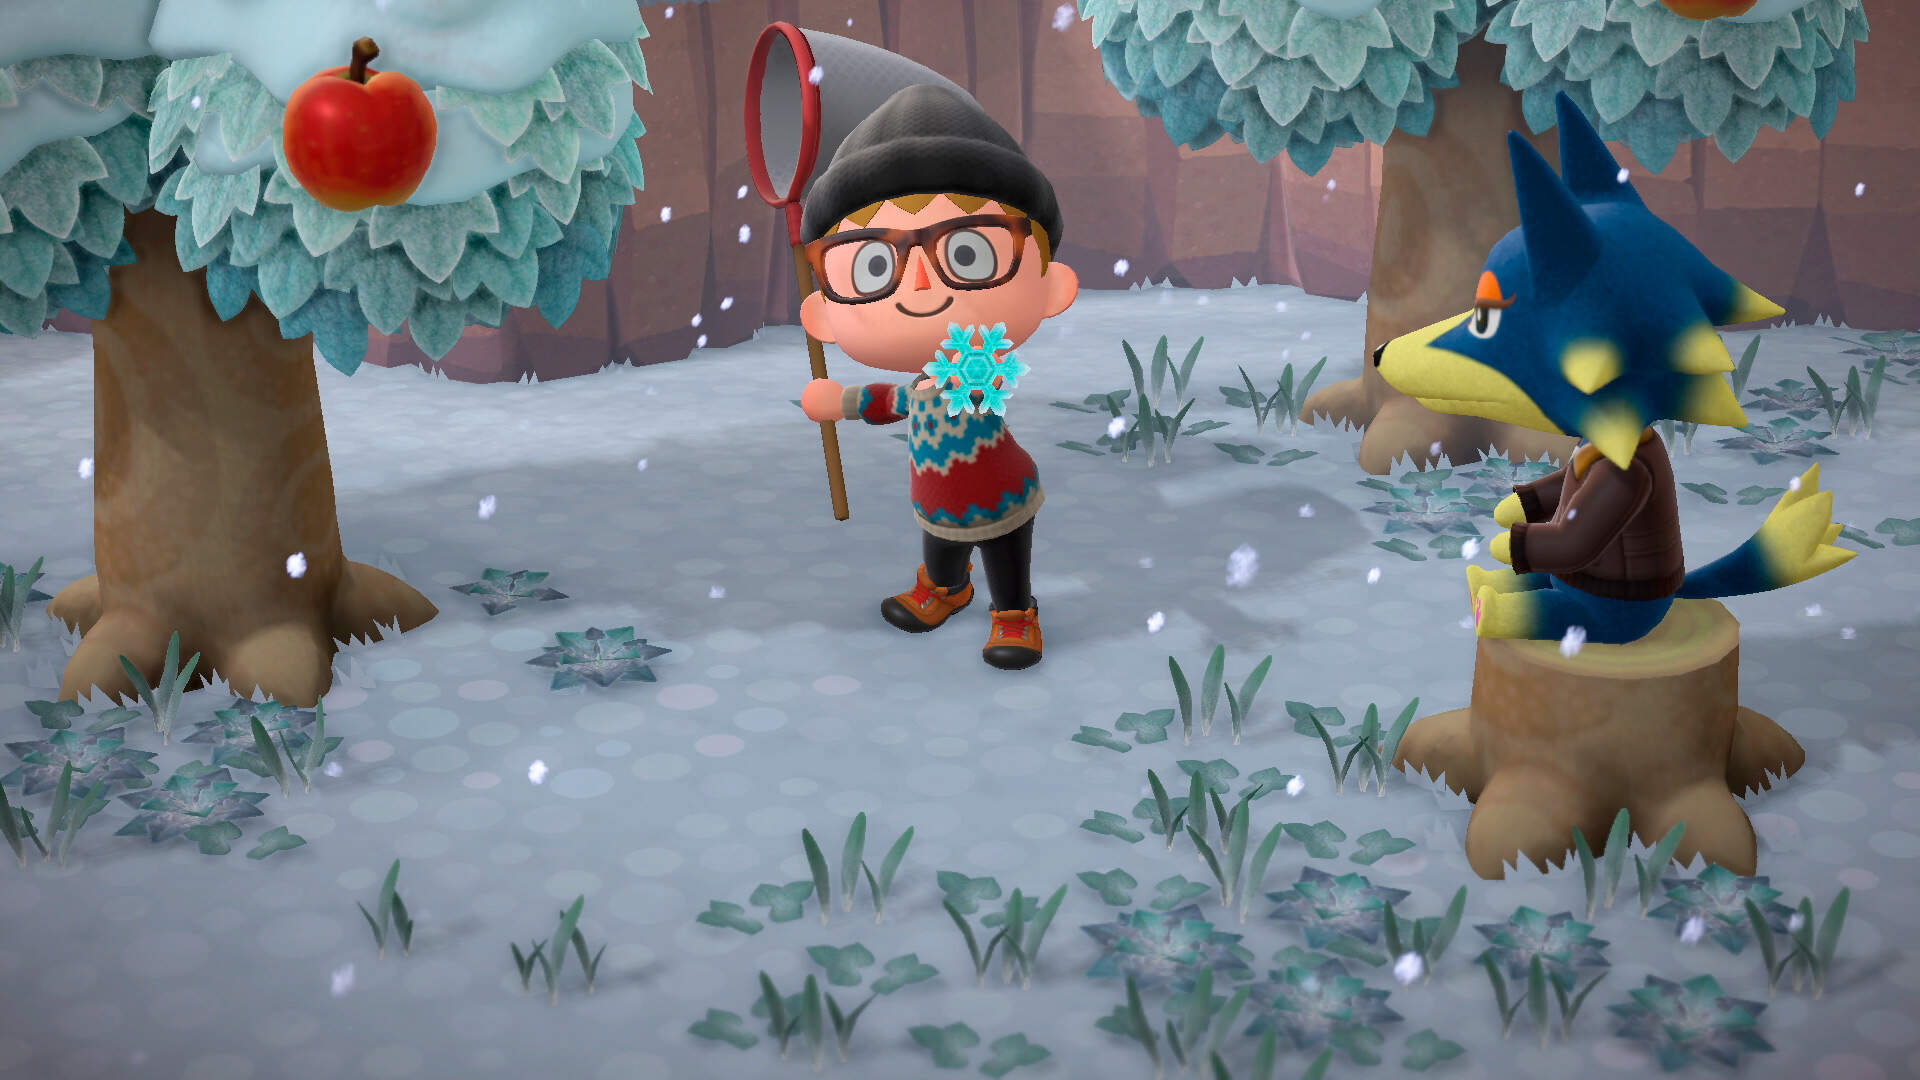 Animal Crossing New Horizons Release Date, Gameplay, Trailer - Everything We Know